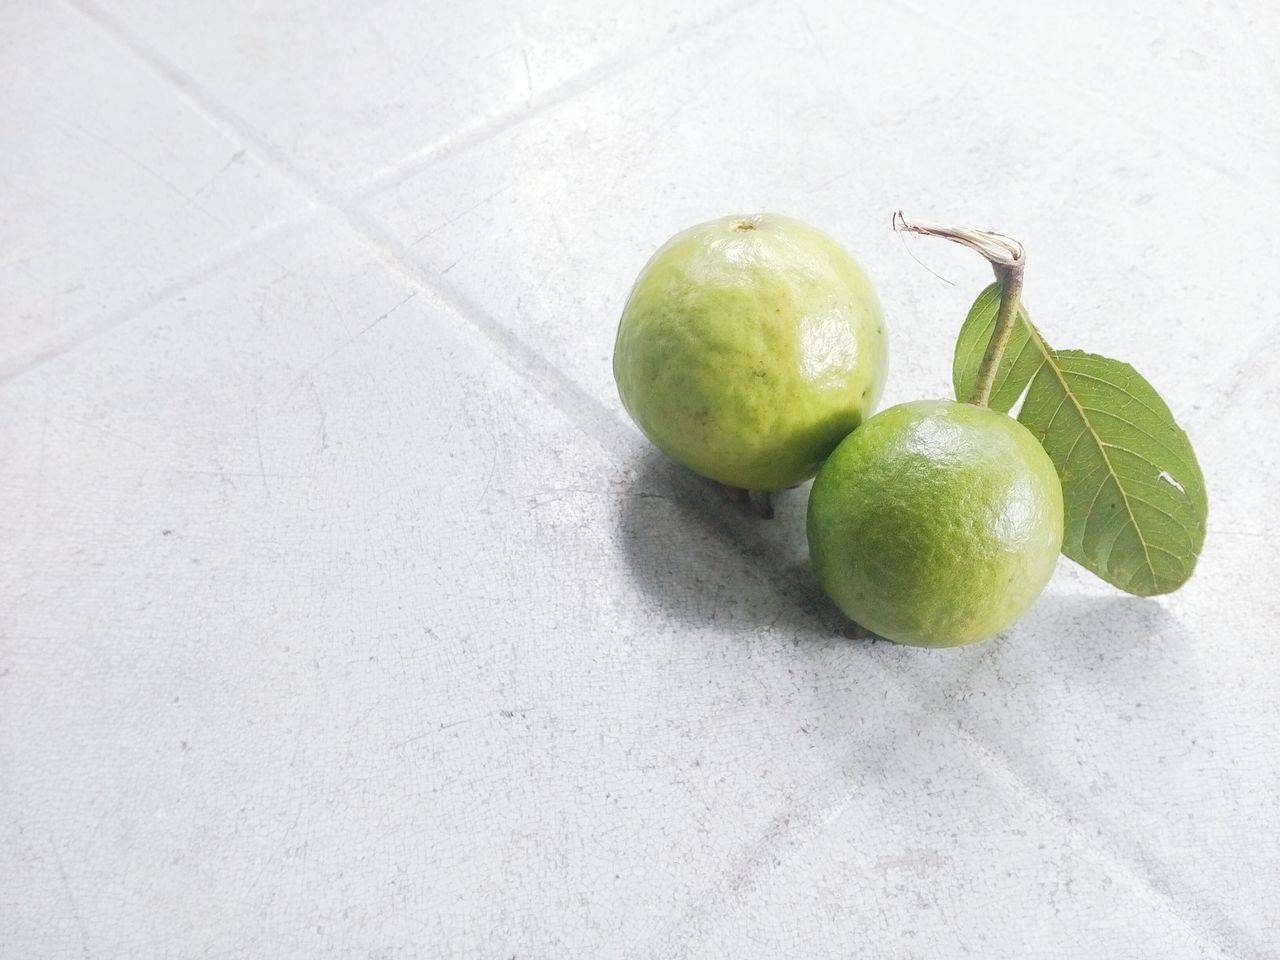 Bayabas. Bayabas Fruitporn Green Freshness Peak Season Plants 🌱 Bayabas Tree Rule Of Thirds